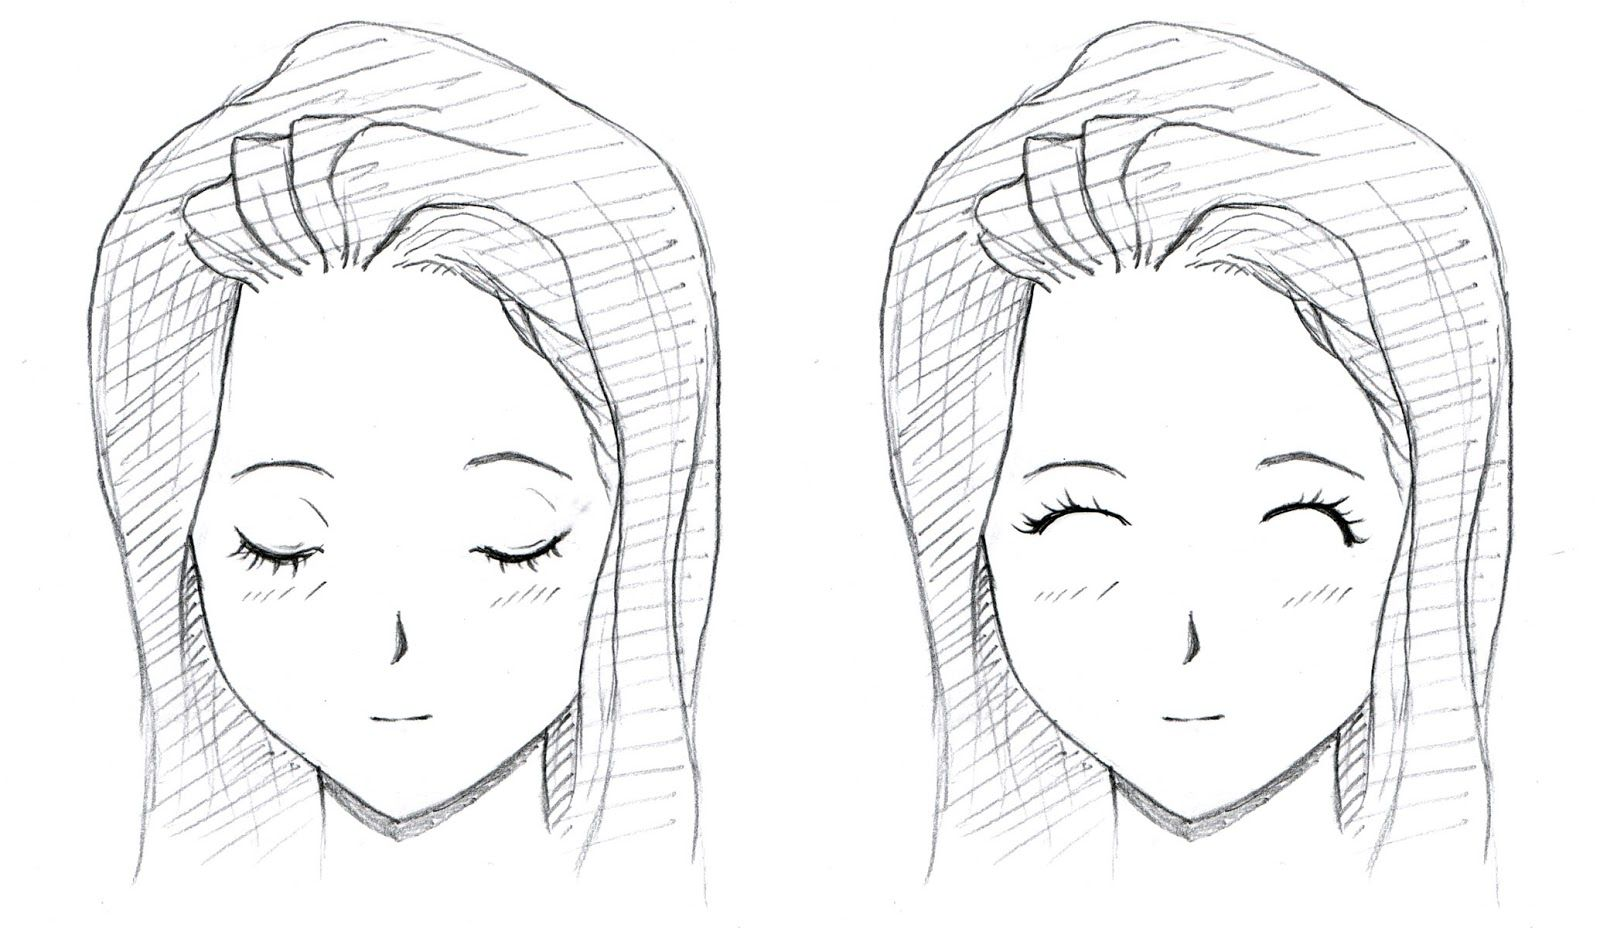 How To Draw Closed Eyes Anime - Google Search